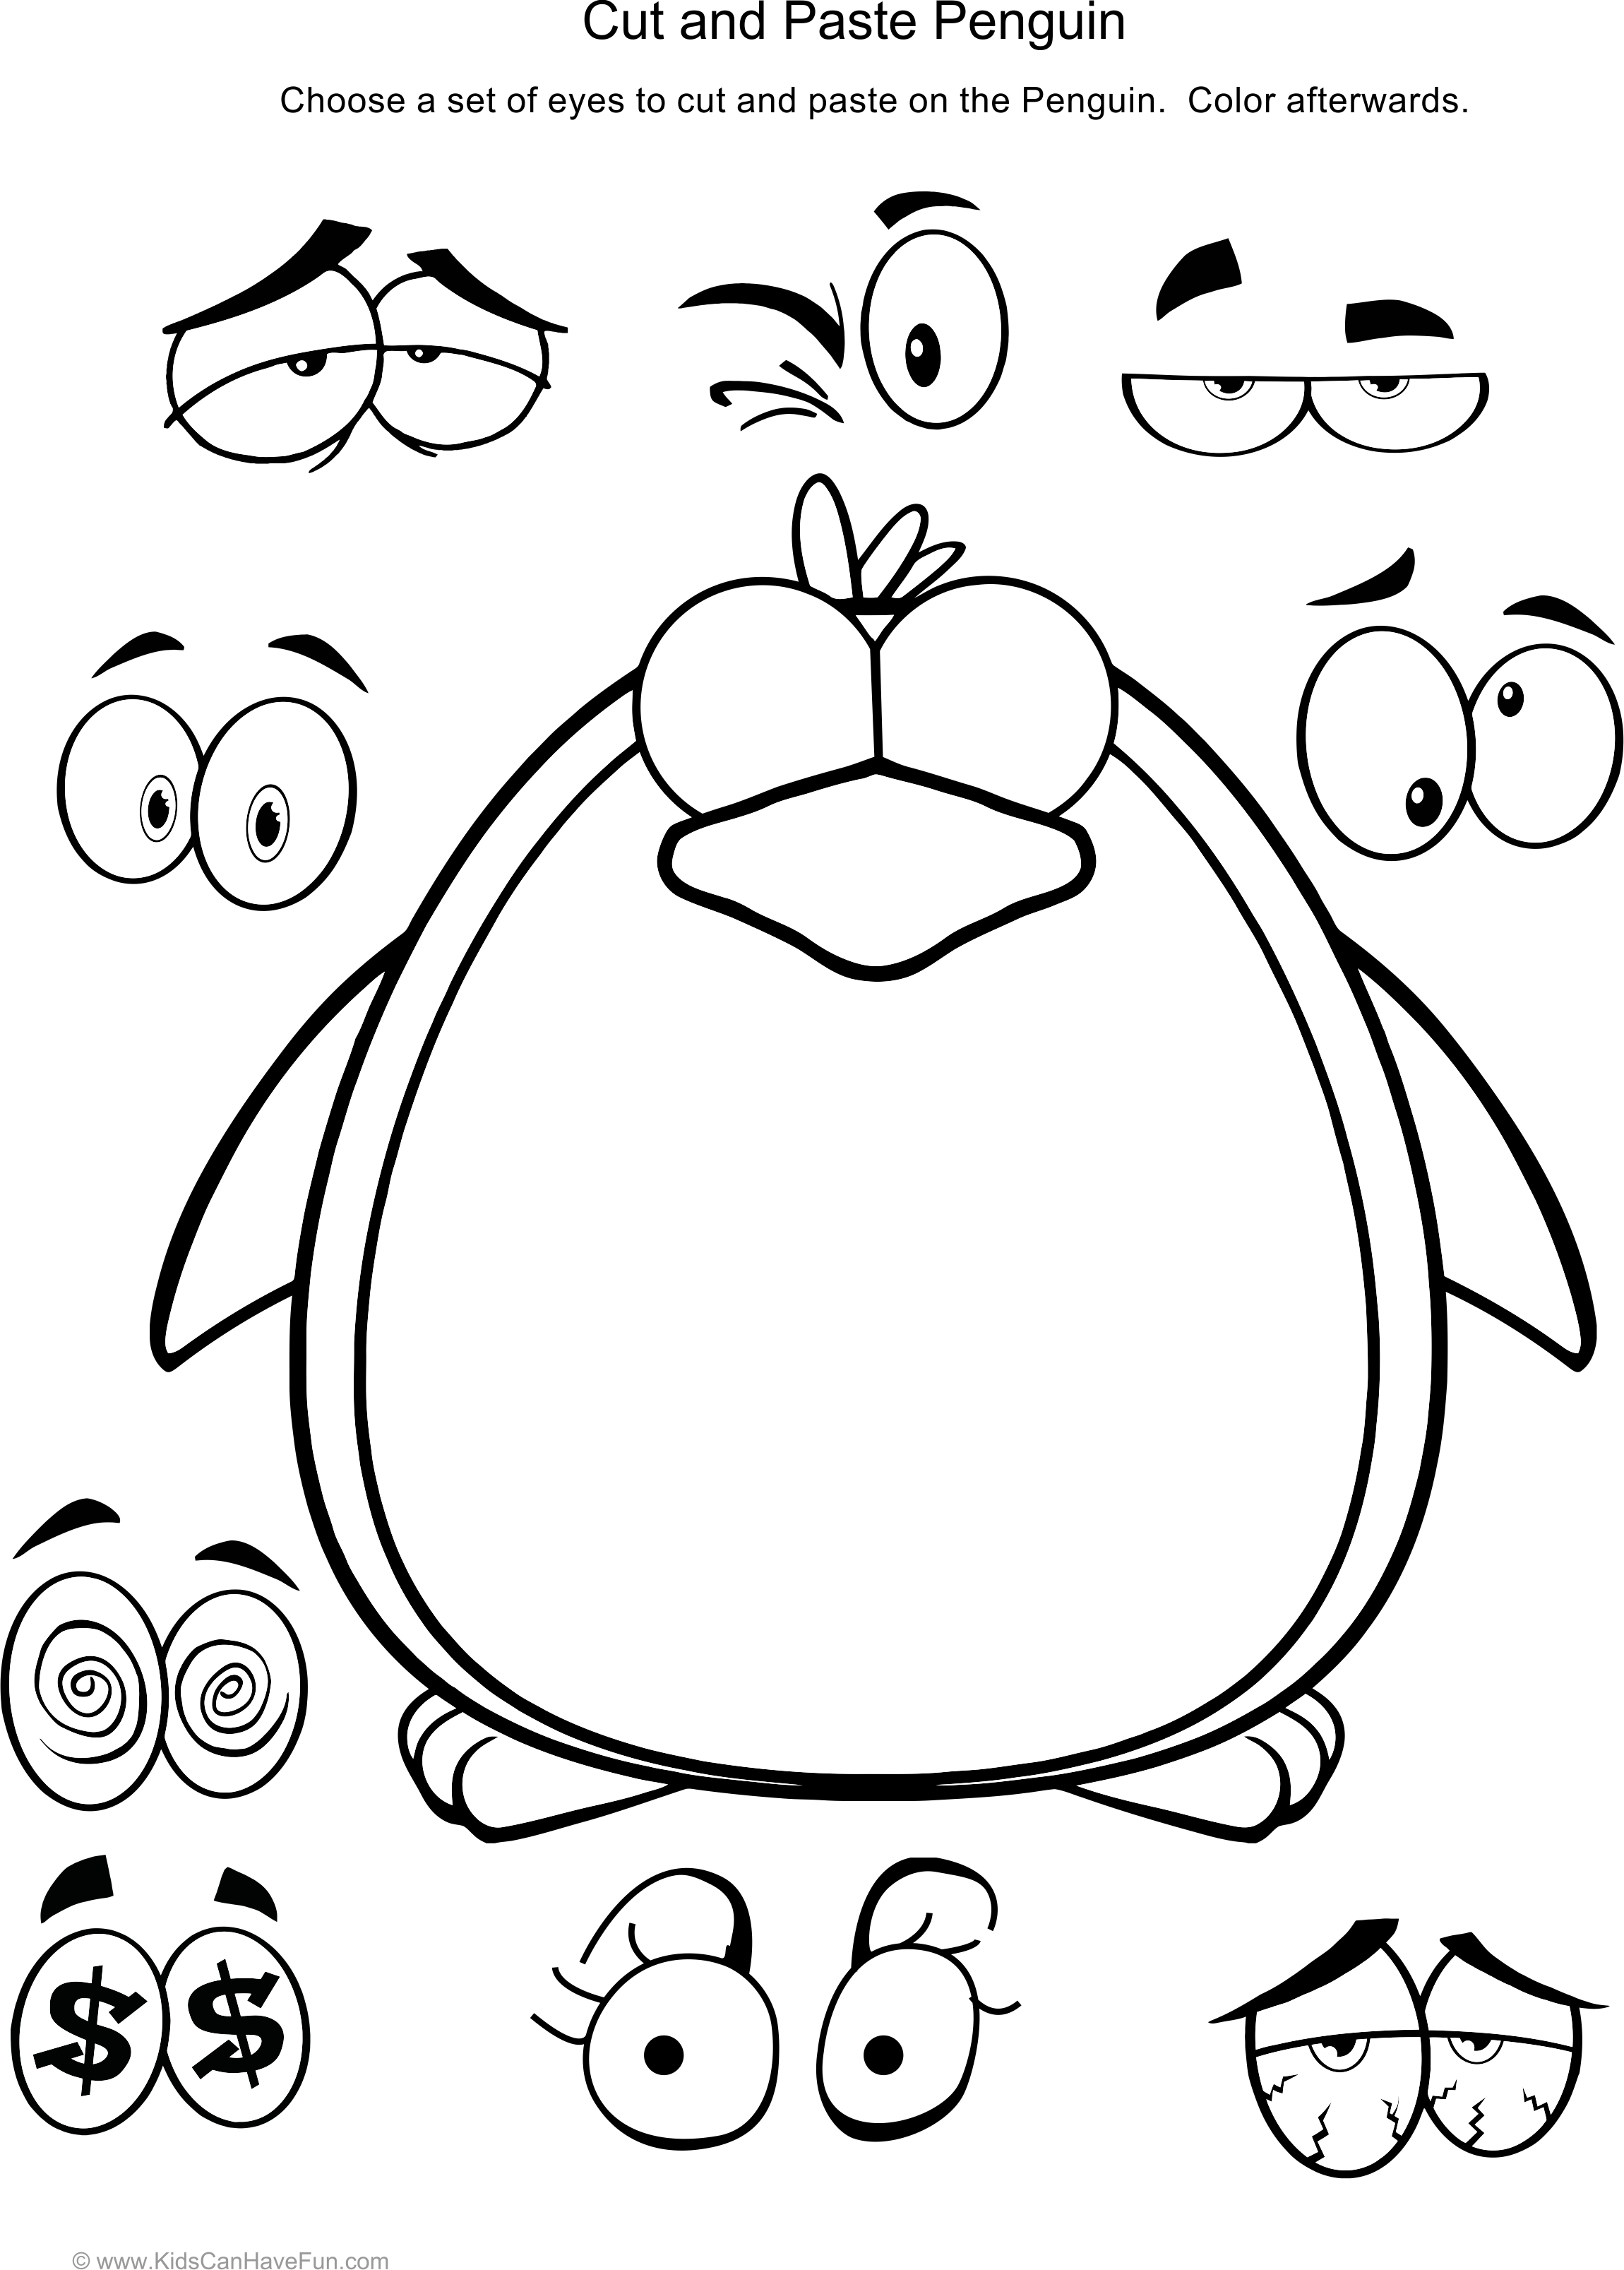 Face Worksheet For Toddlers